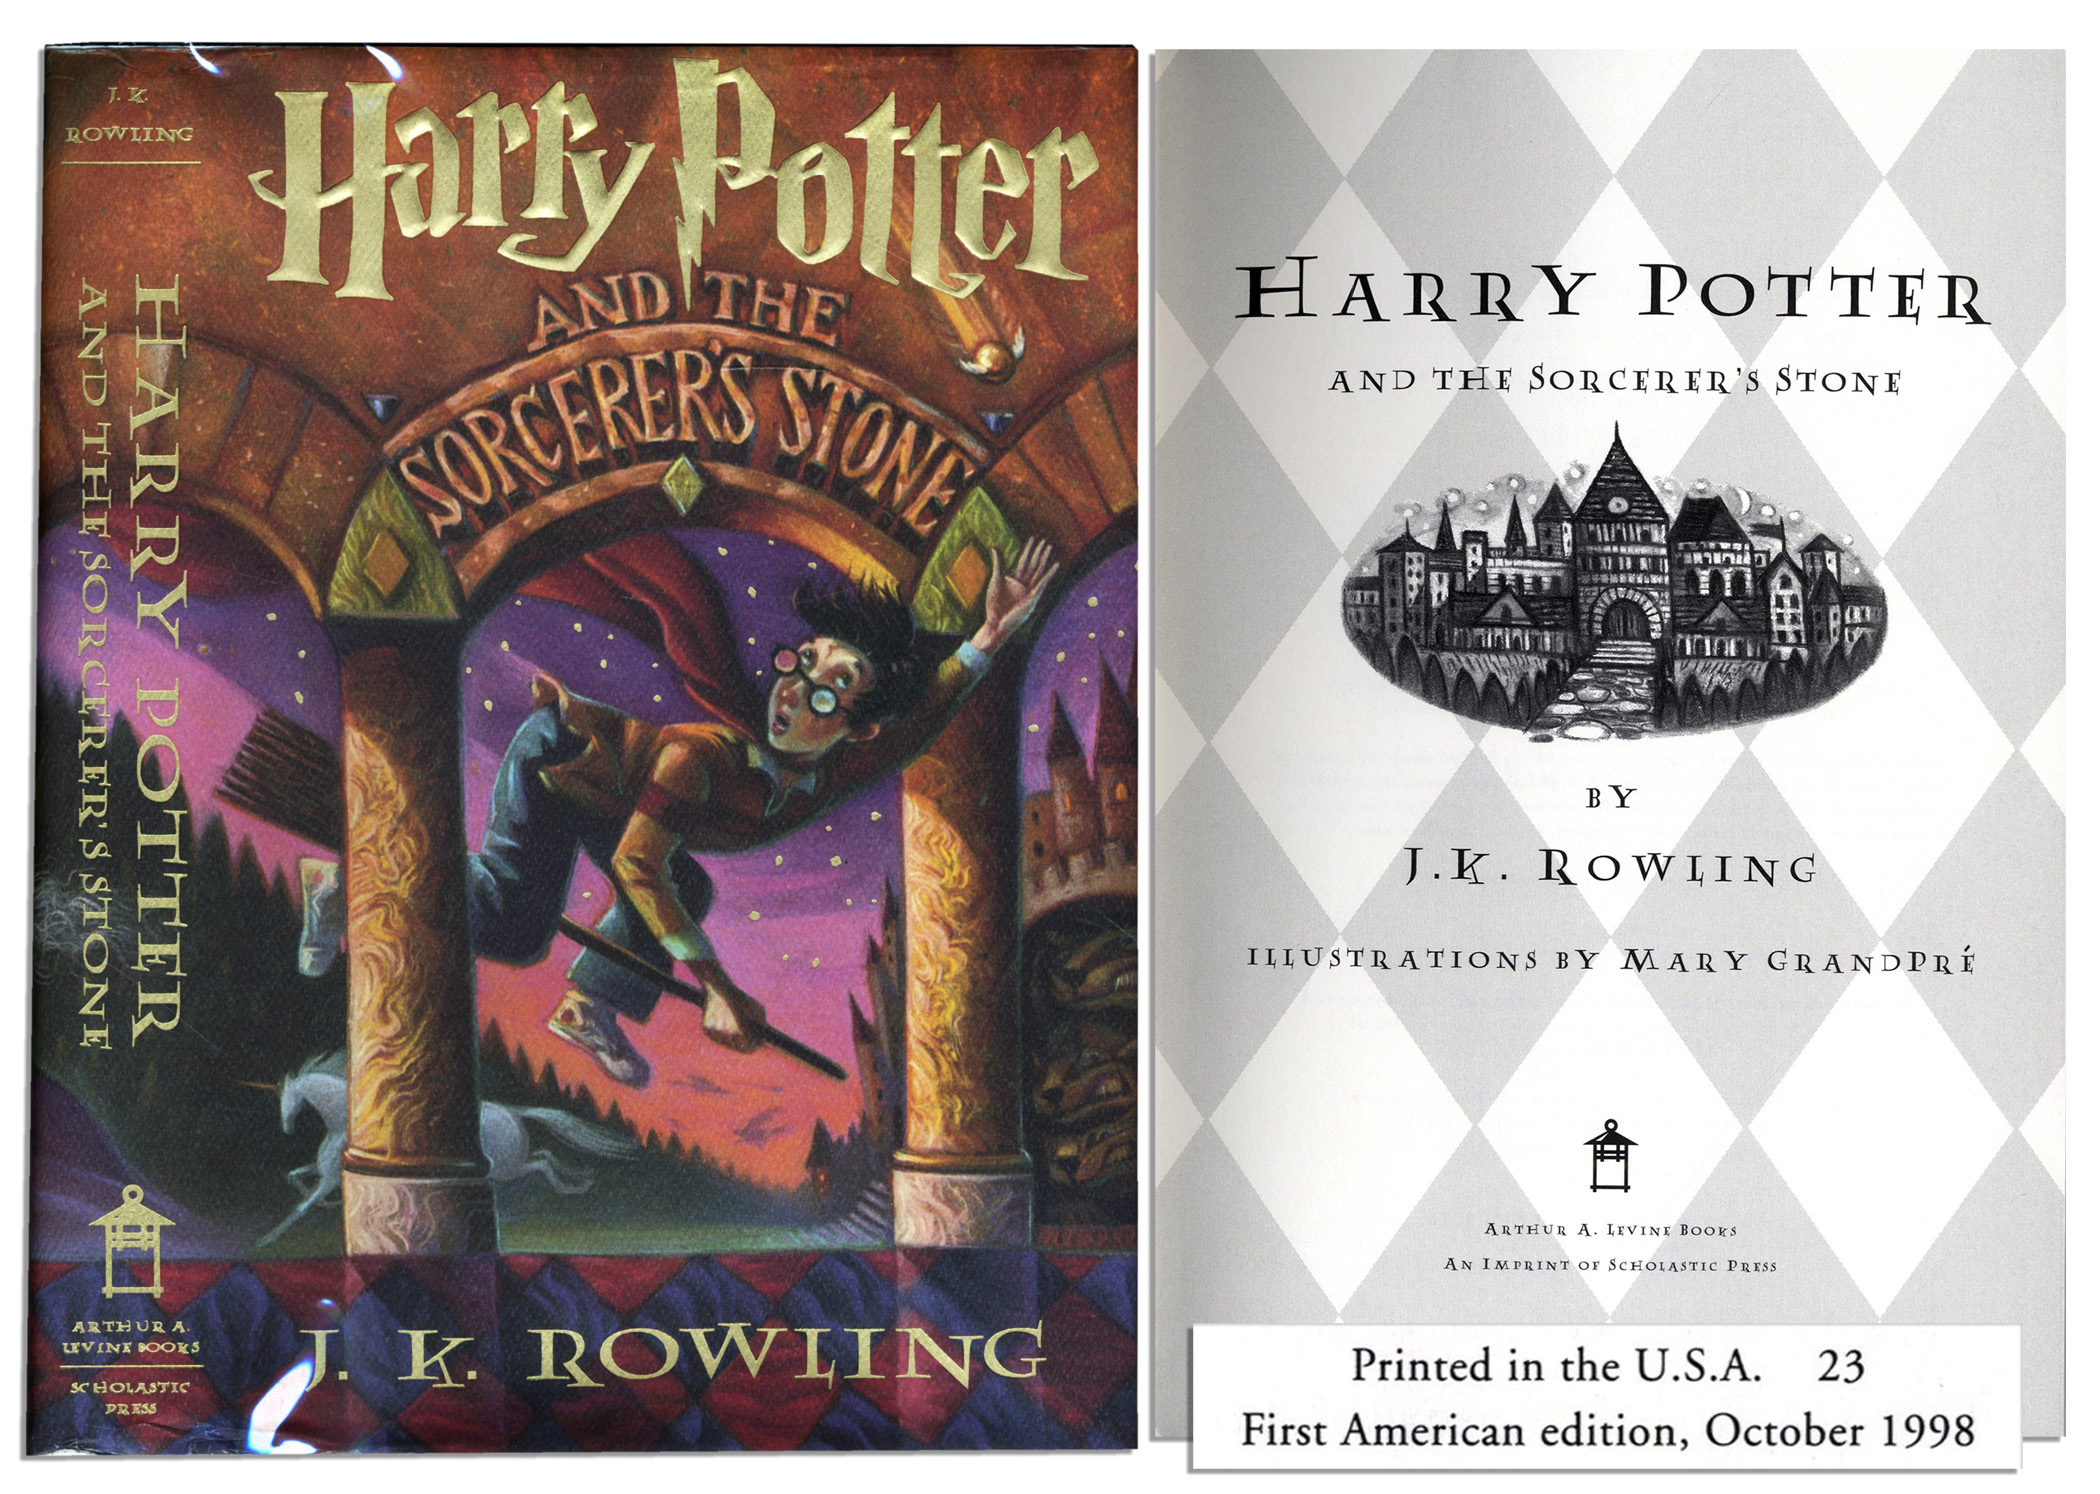 Harry Potter Book First Edition : Lot detail harry potter and the sorcerer s stone